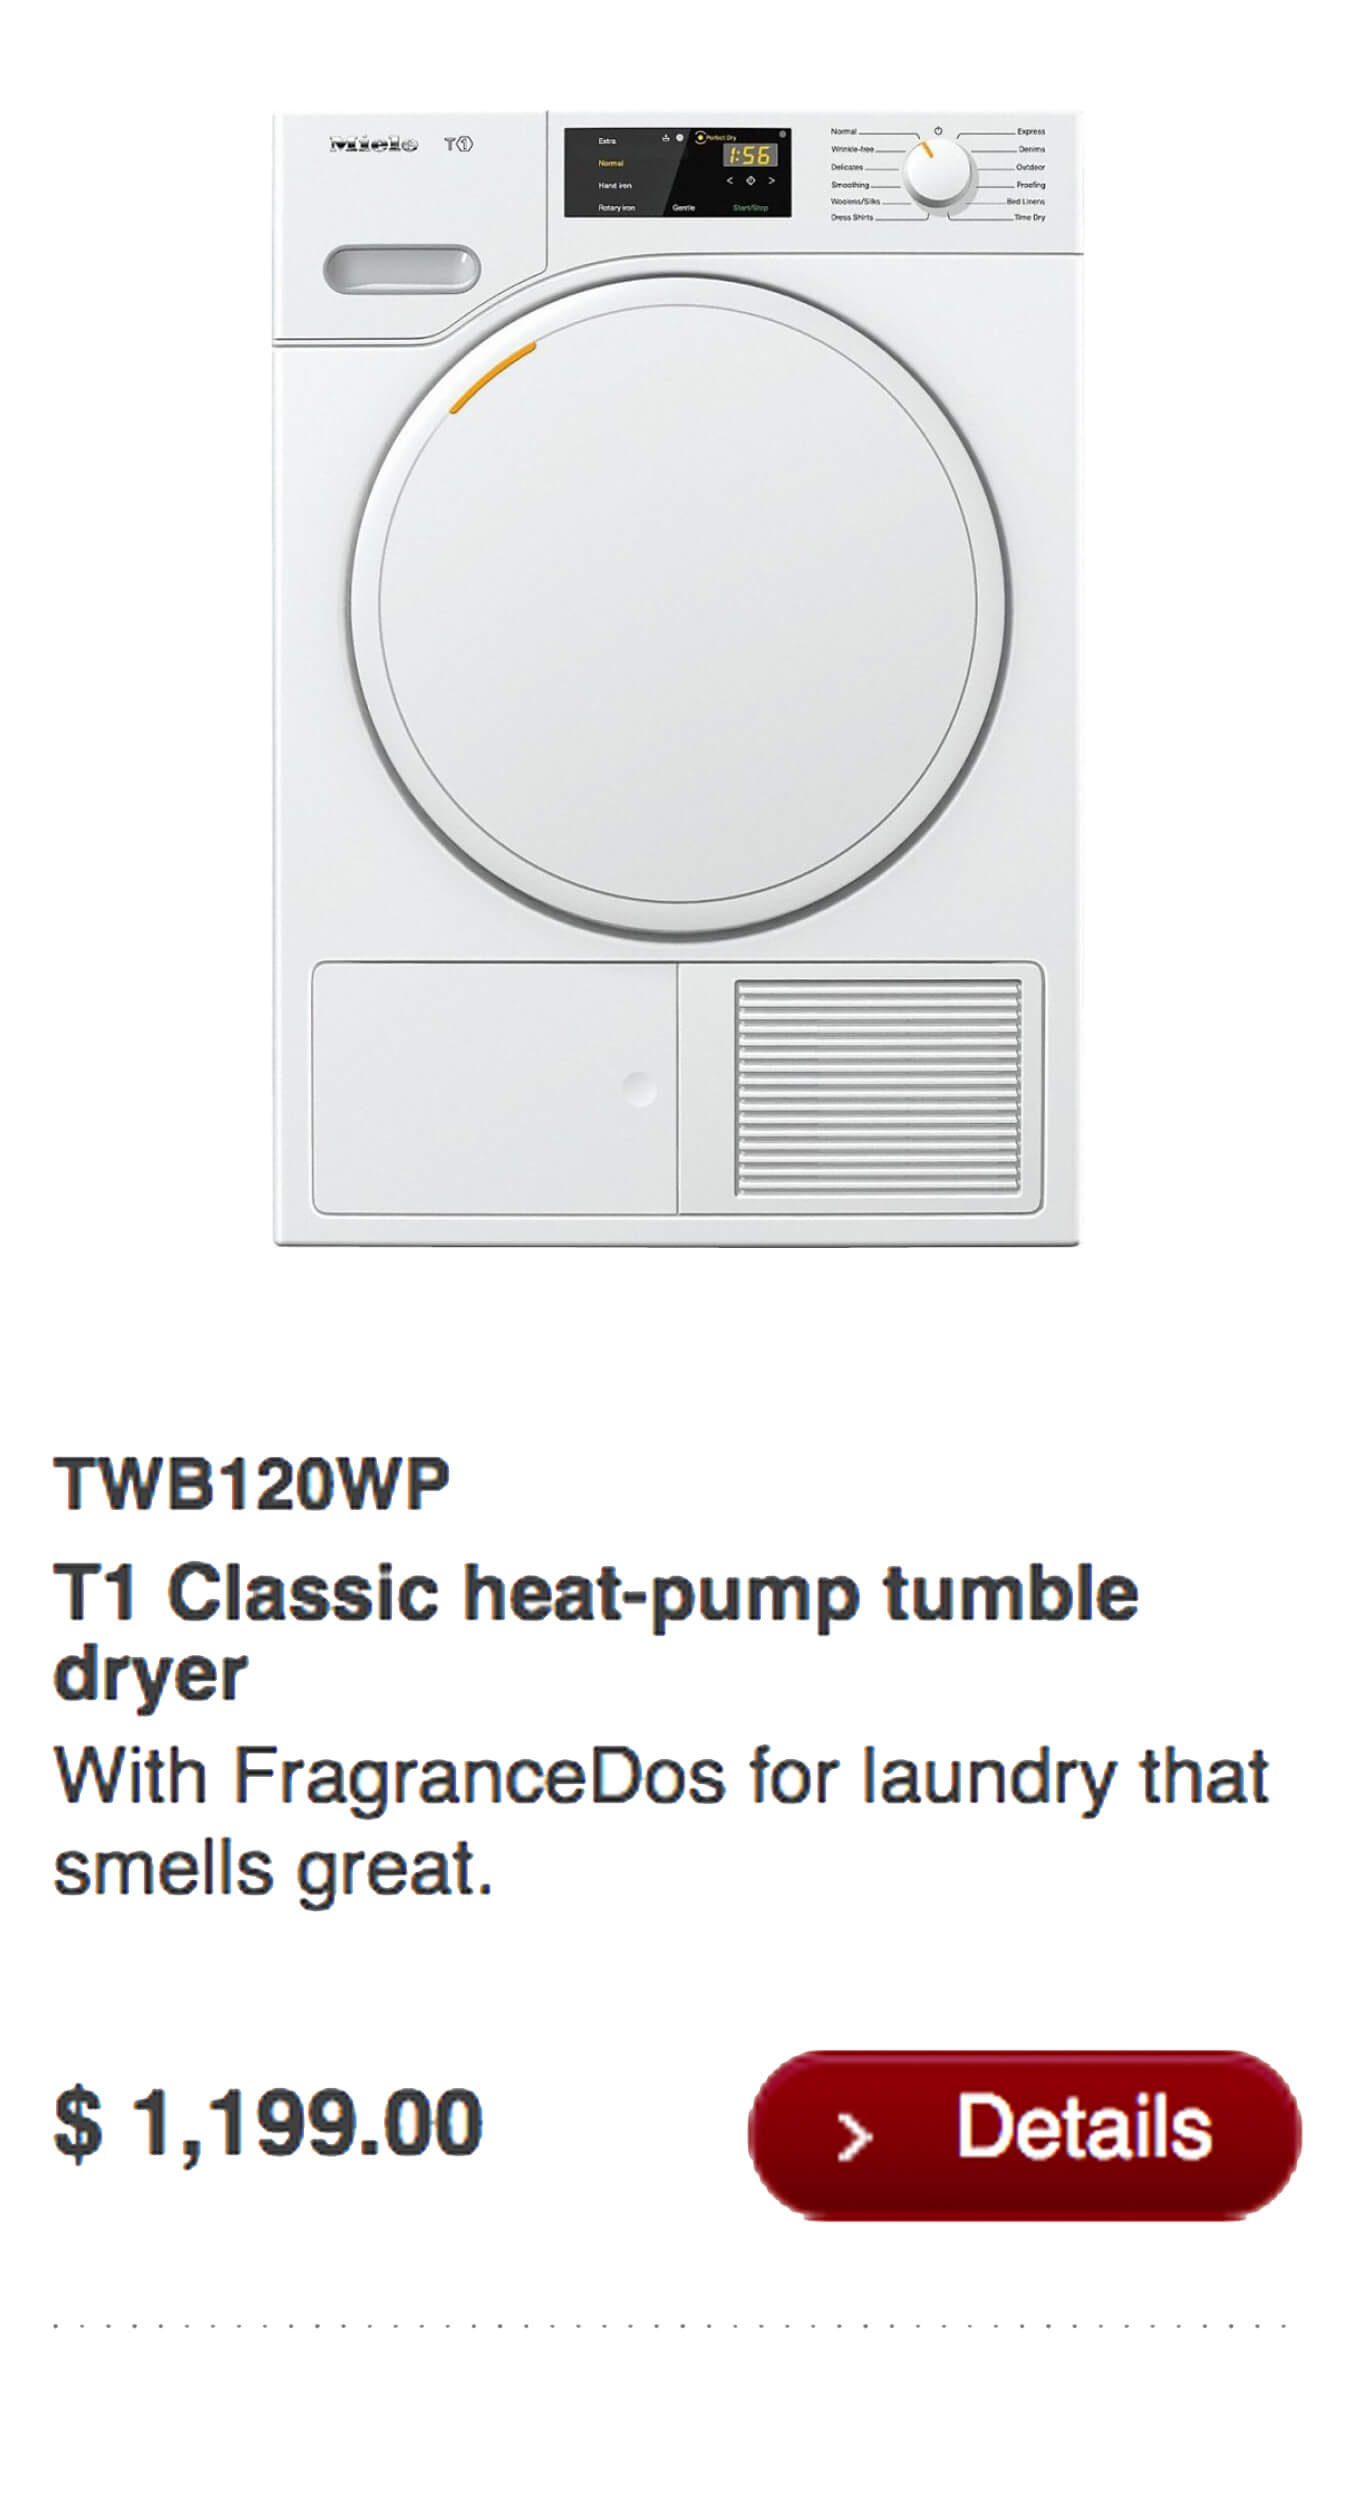 T1 Classic Heat-Pump Tumble Dryer